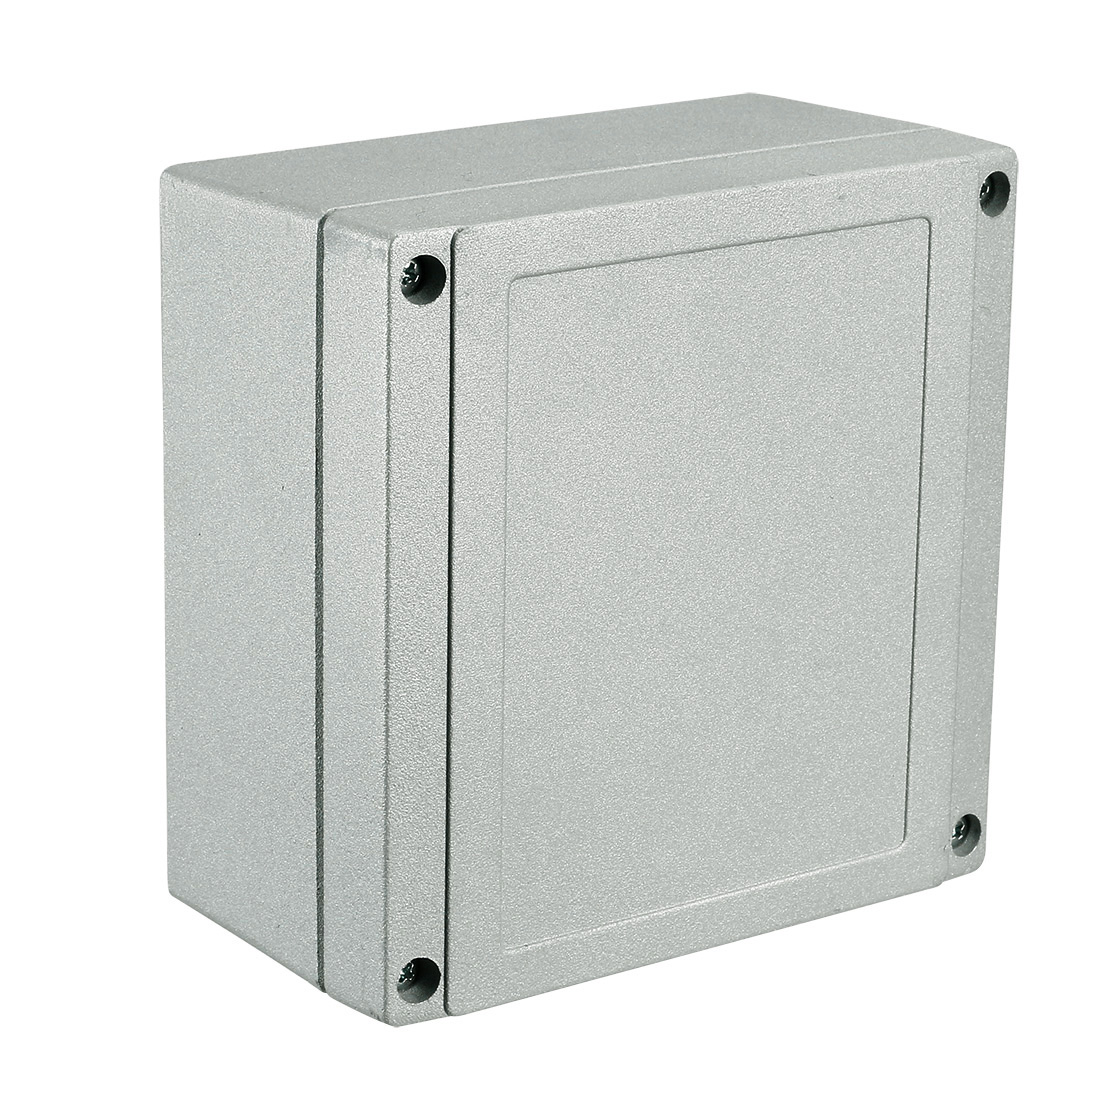 """5.5""""x5.5""""x2.95""""(140mmx140mmx75mm) Aluminum Junction Box Universal Electric Project Enclosure w Two Horns"""